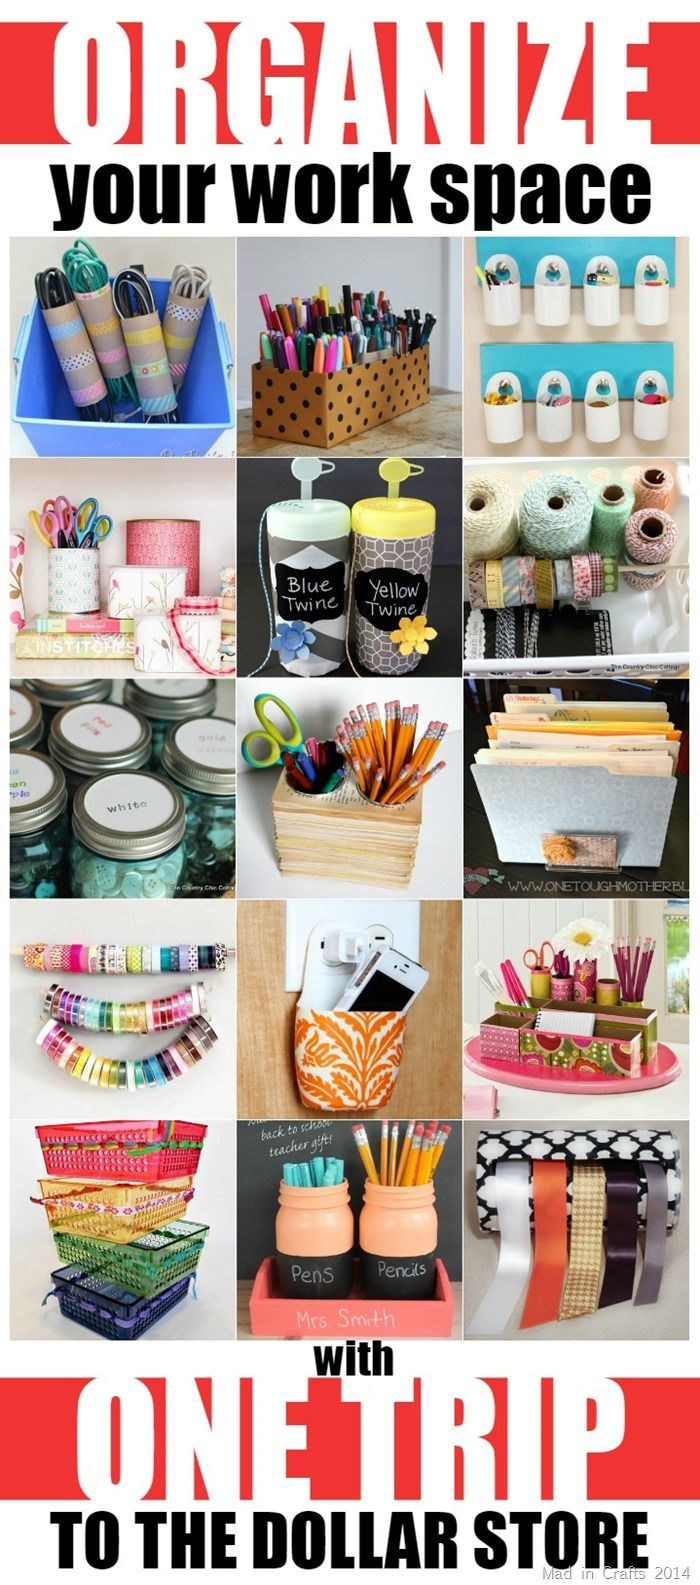 Organize Your Work Space with One Trip to the Dollar Store - Mad in Crafts